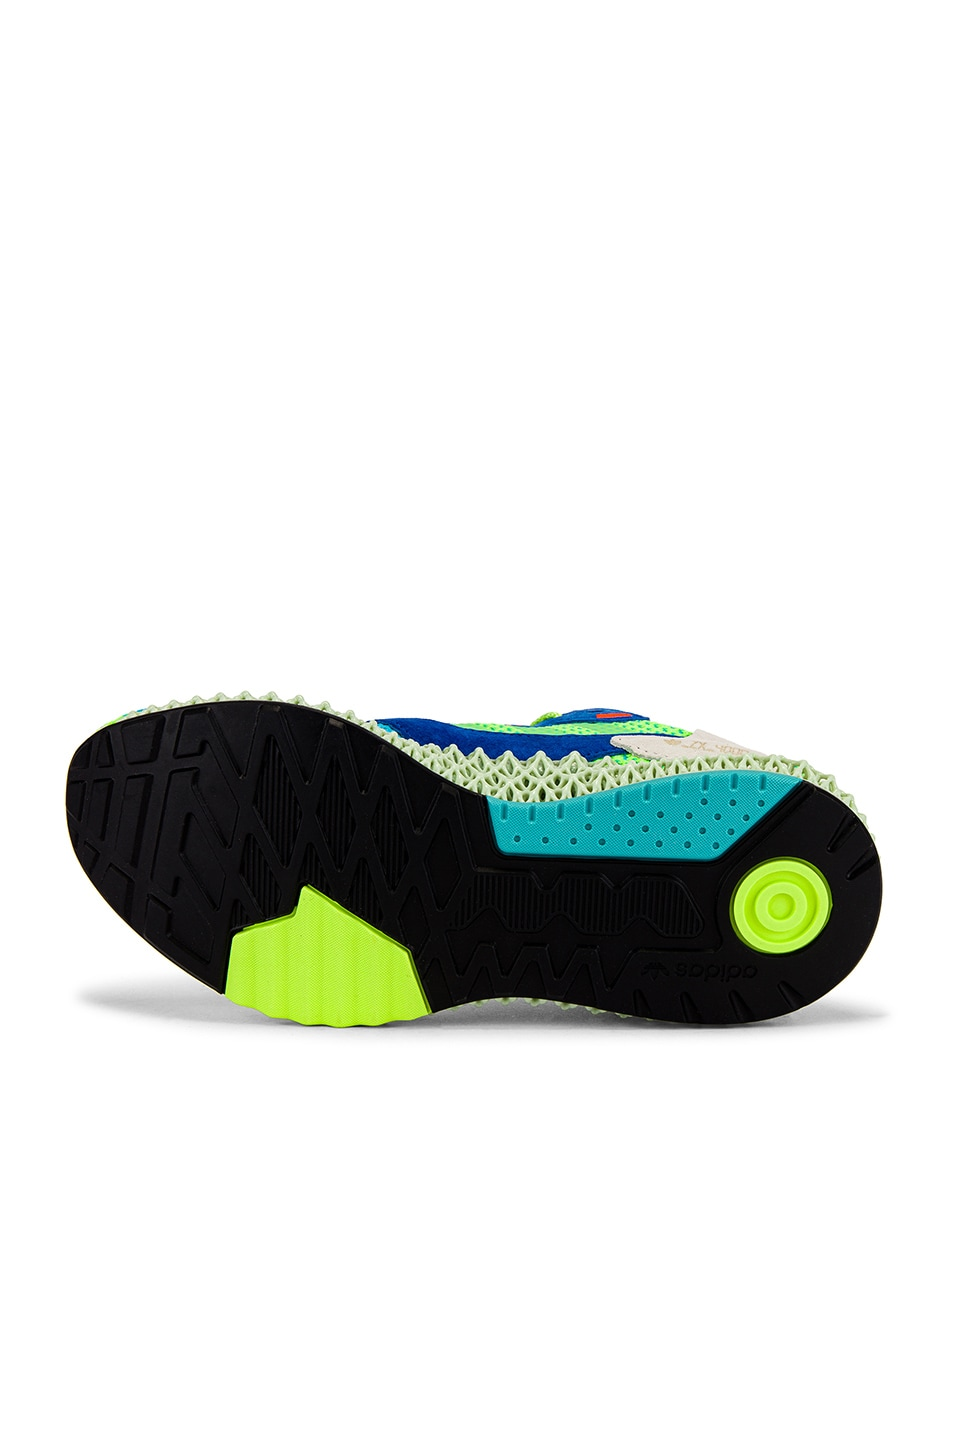 Image 6 of adidas Originals ZX4000 4D Sneaker in